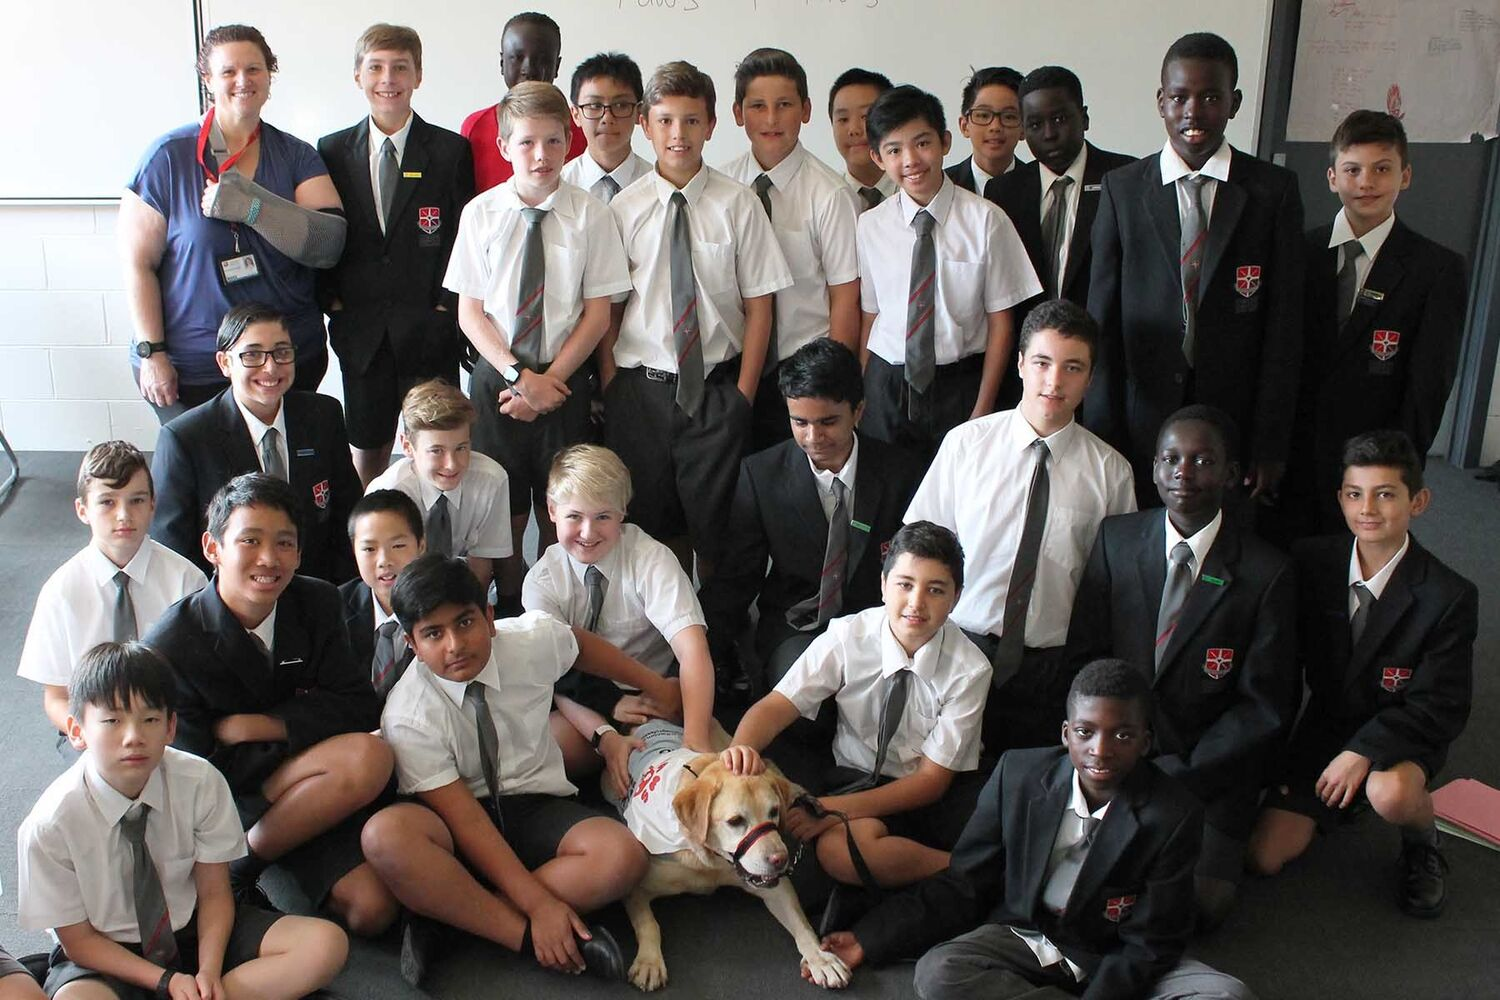 Group Of School Boys With Therapy Dog